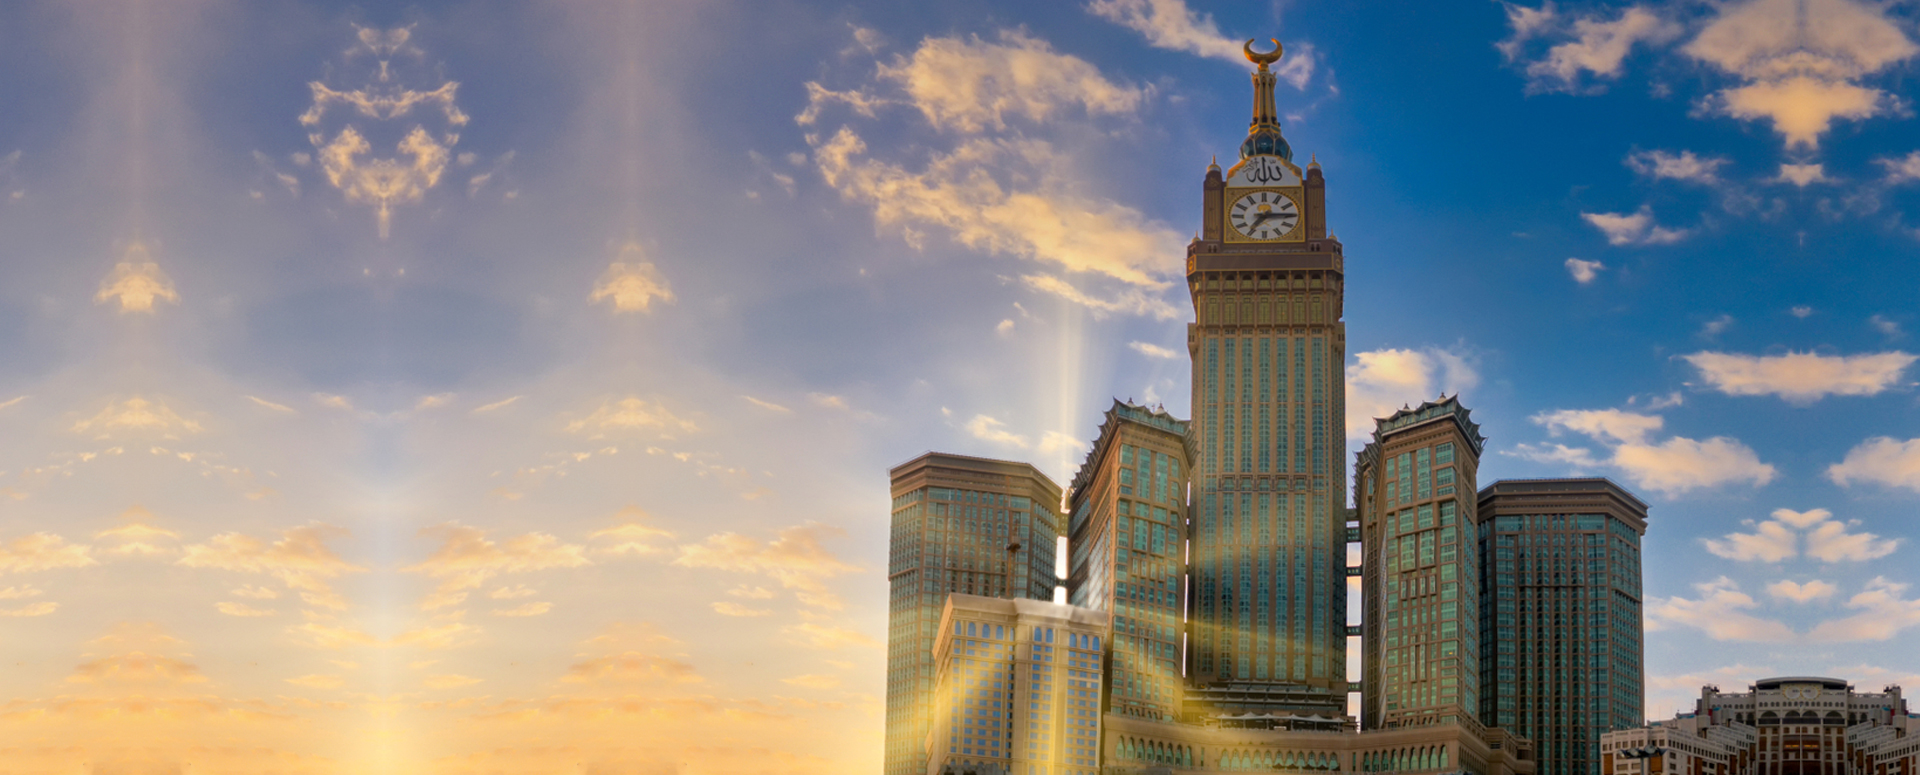 5 STAR HAJJ PACKAGE - Buraq Travels USA